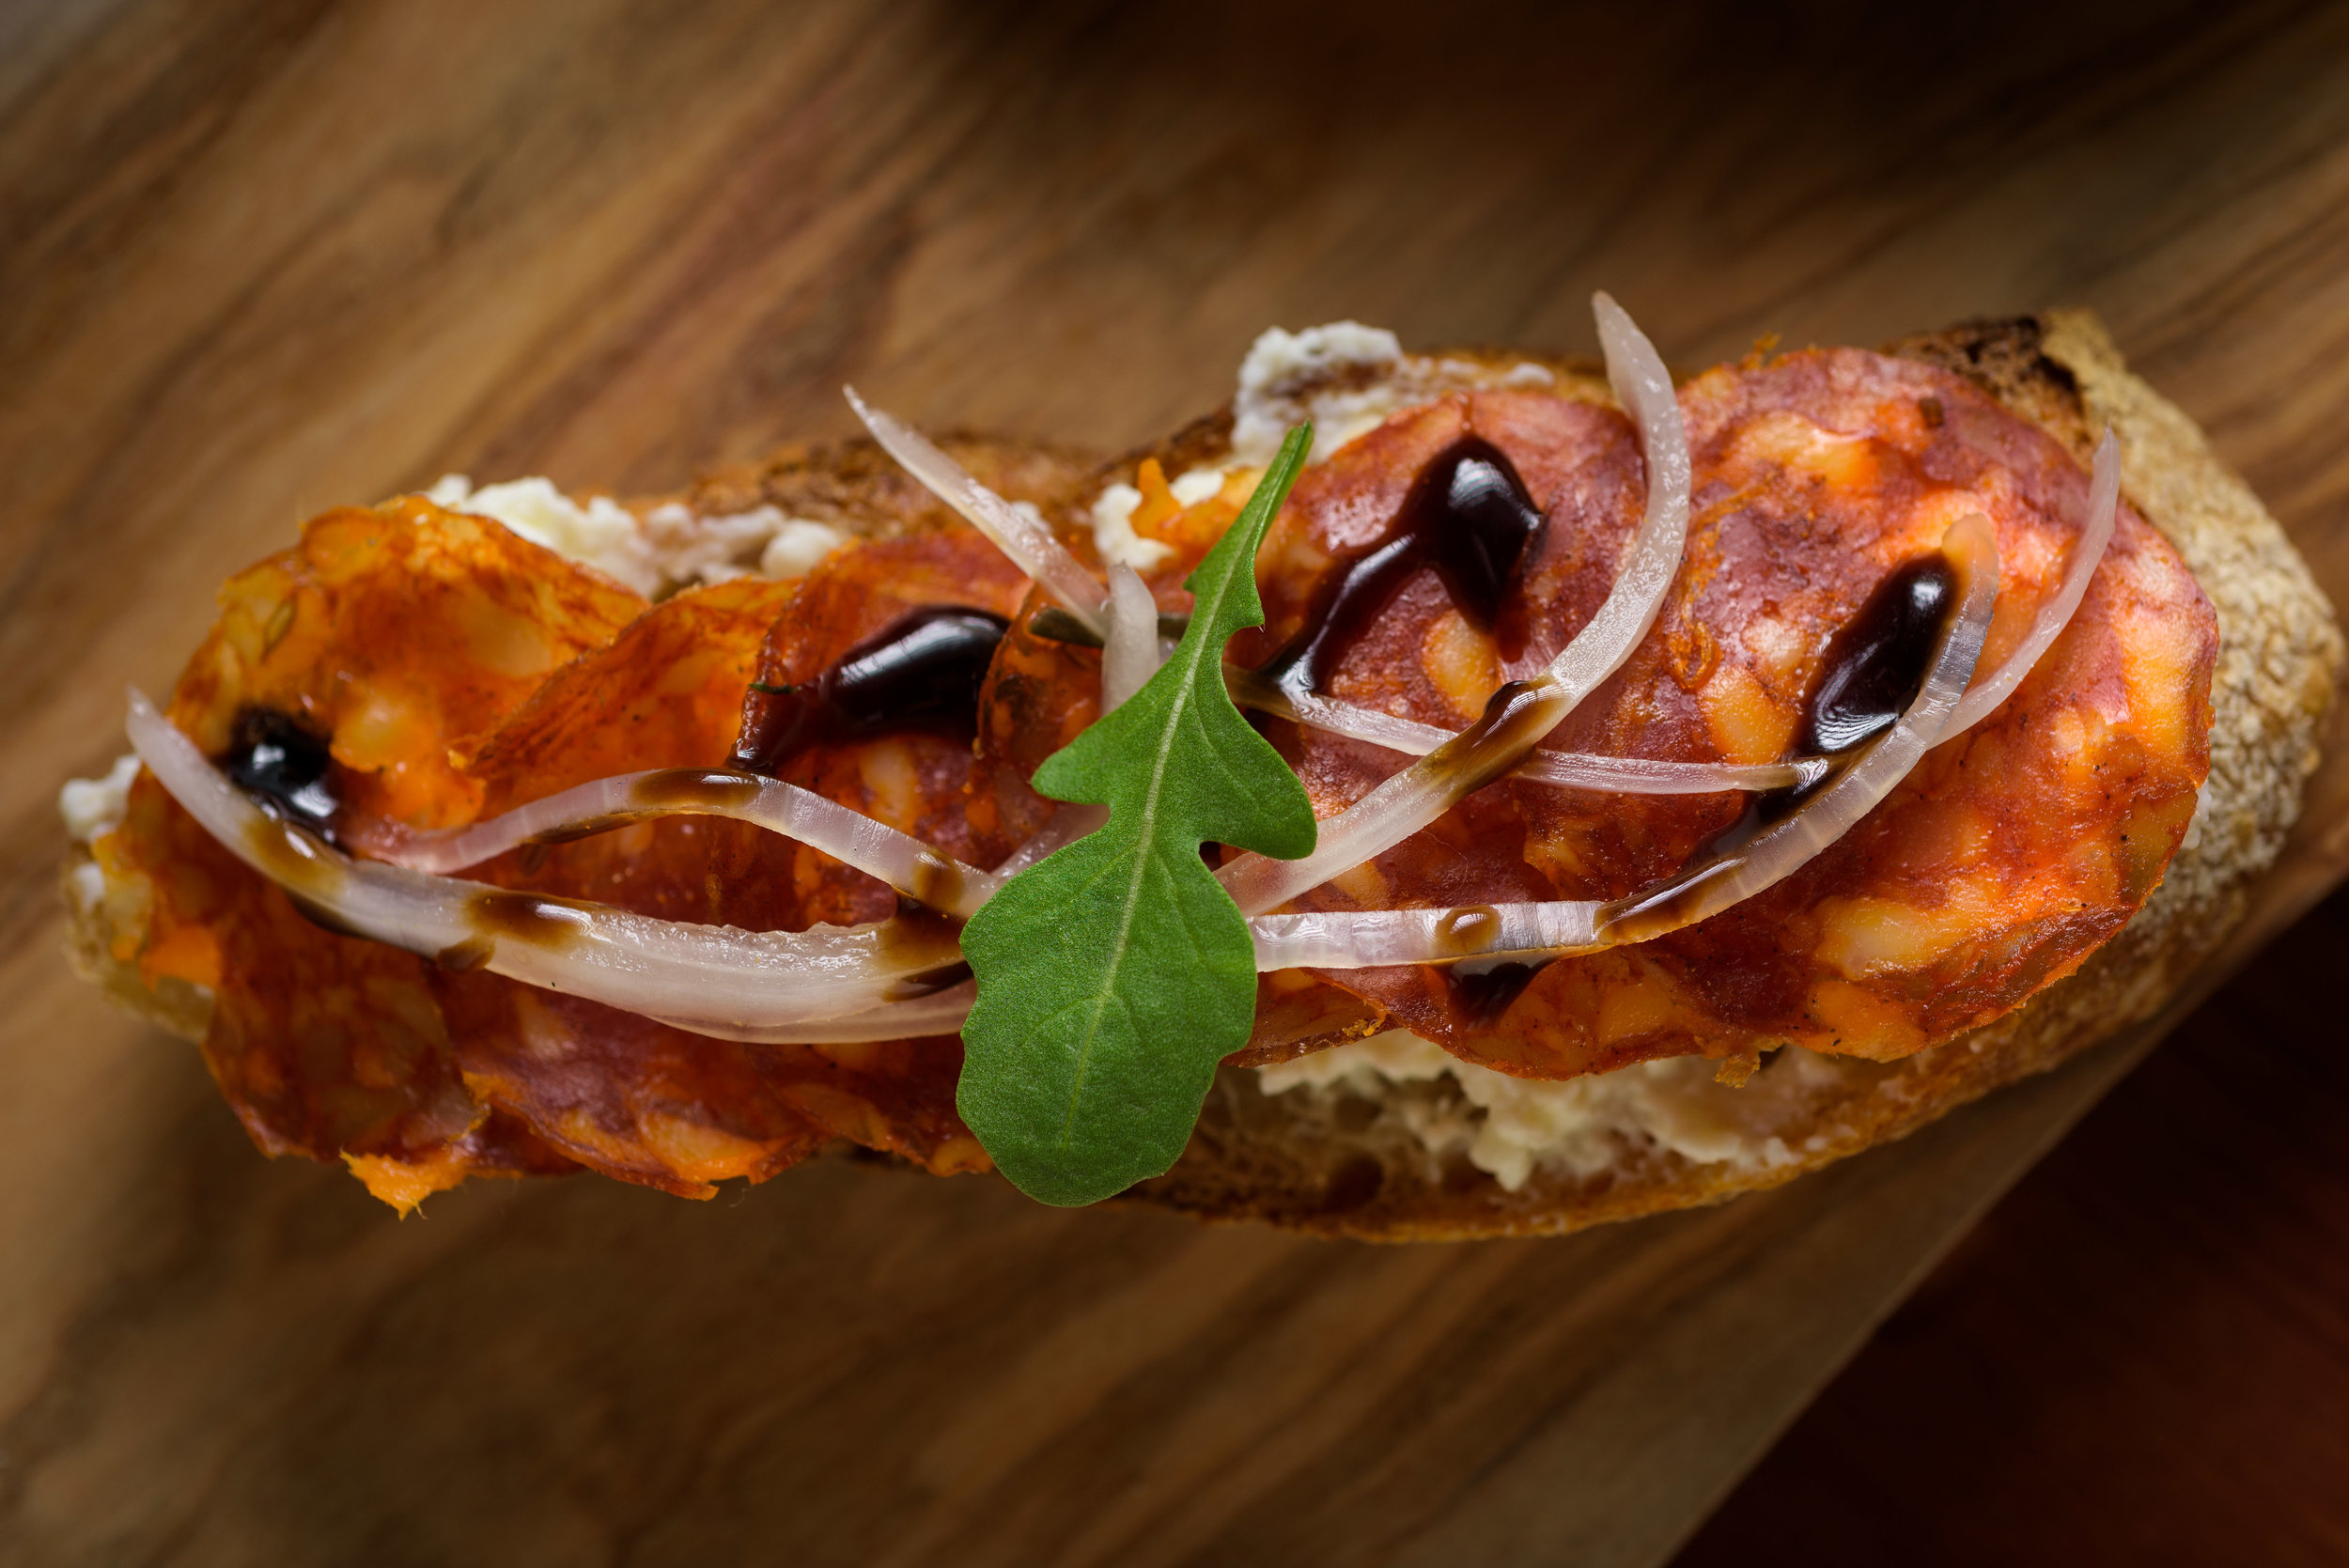 flatbread with sliced meats - Cupertino food photography - RootStock Wine Bar - photos by Bay Area commercial photographer Chris Schmauch